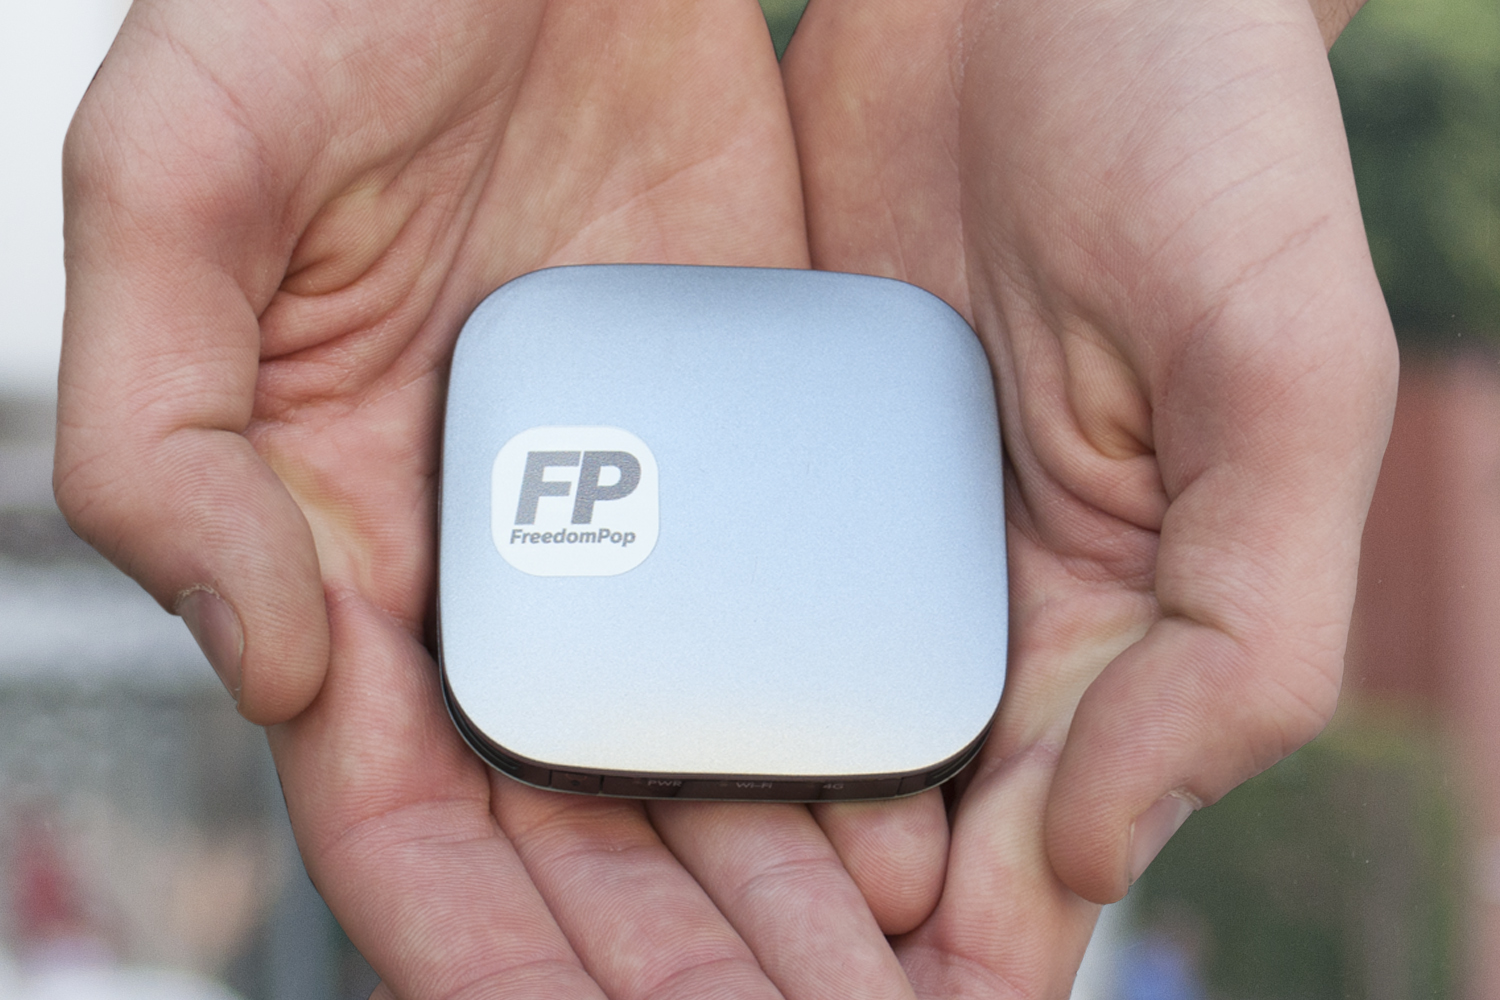 The FreedomPop Photo mobile hotspot